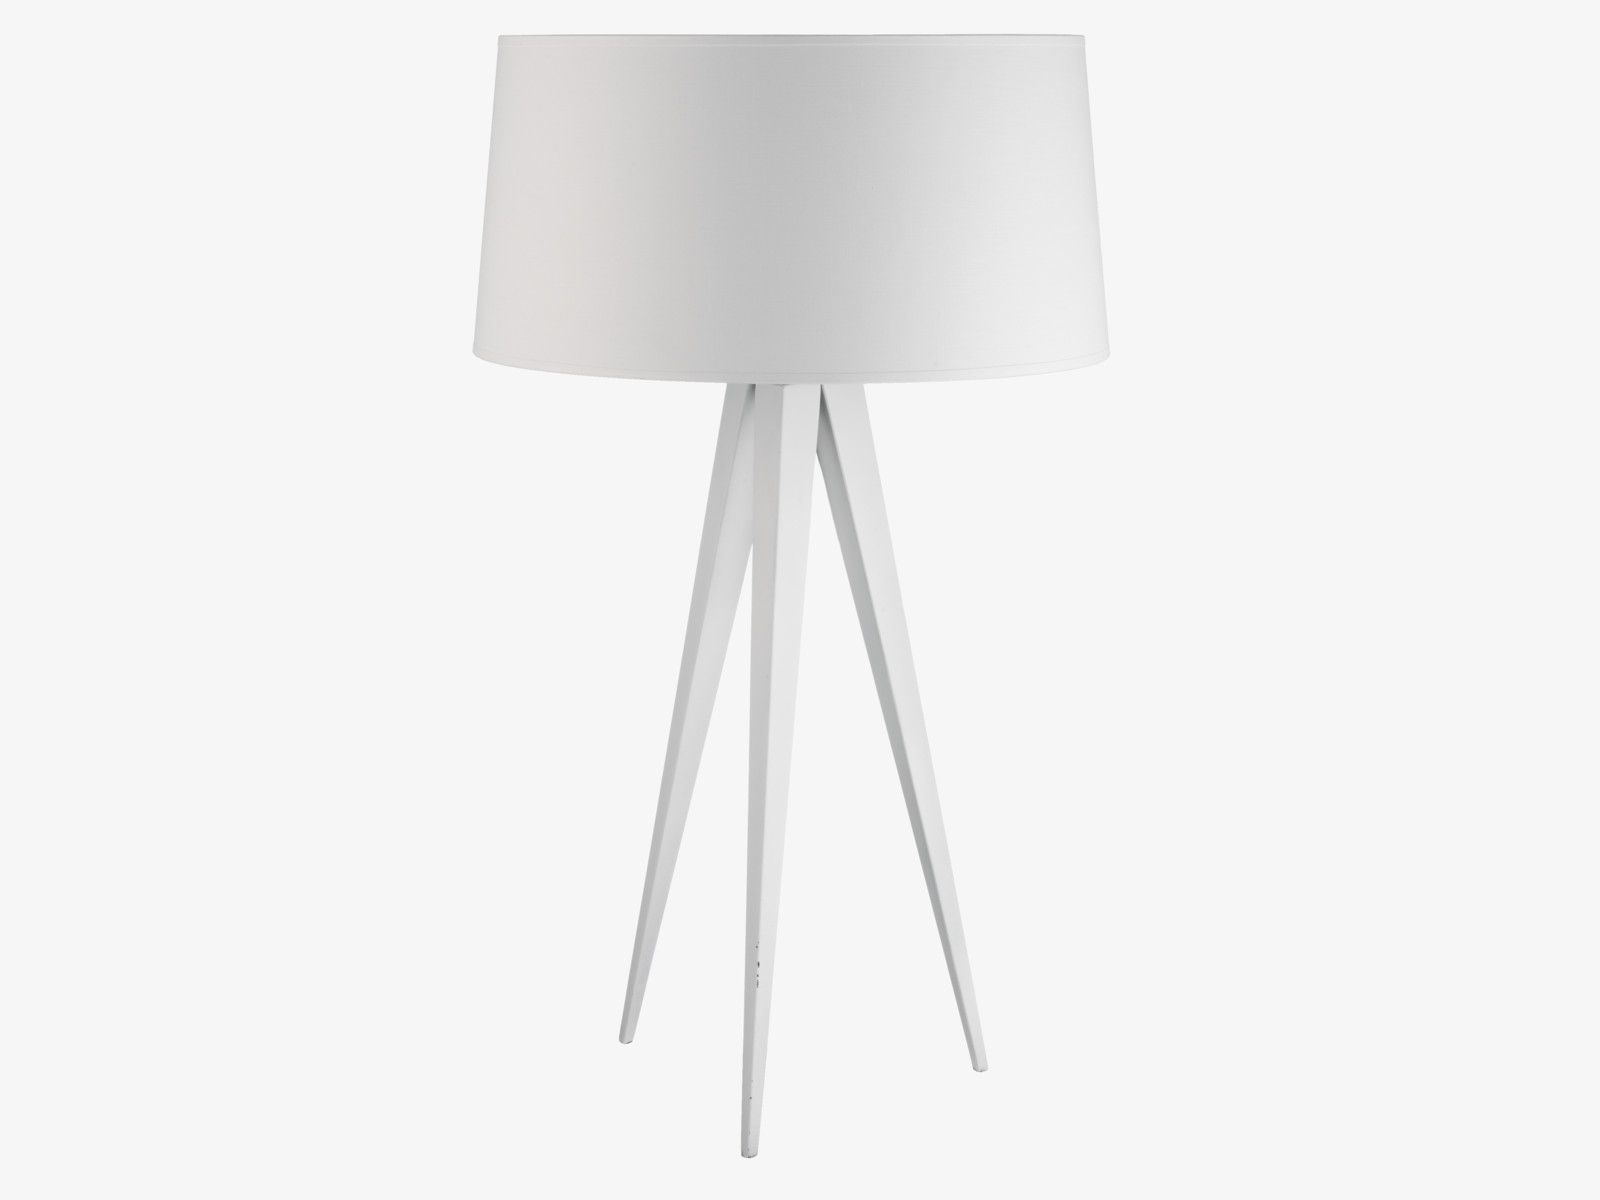 Yves white metal tripod table lamp base tripod table lamp table yves white metal tripod table lamp base geotapseo Image collections